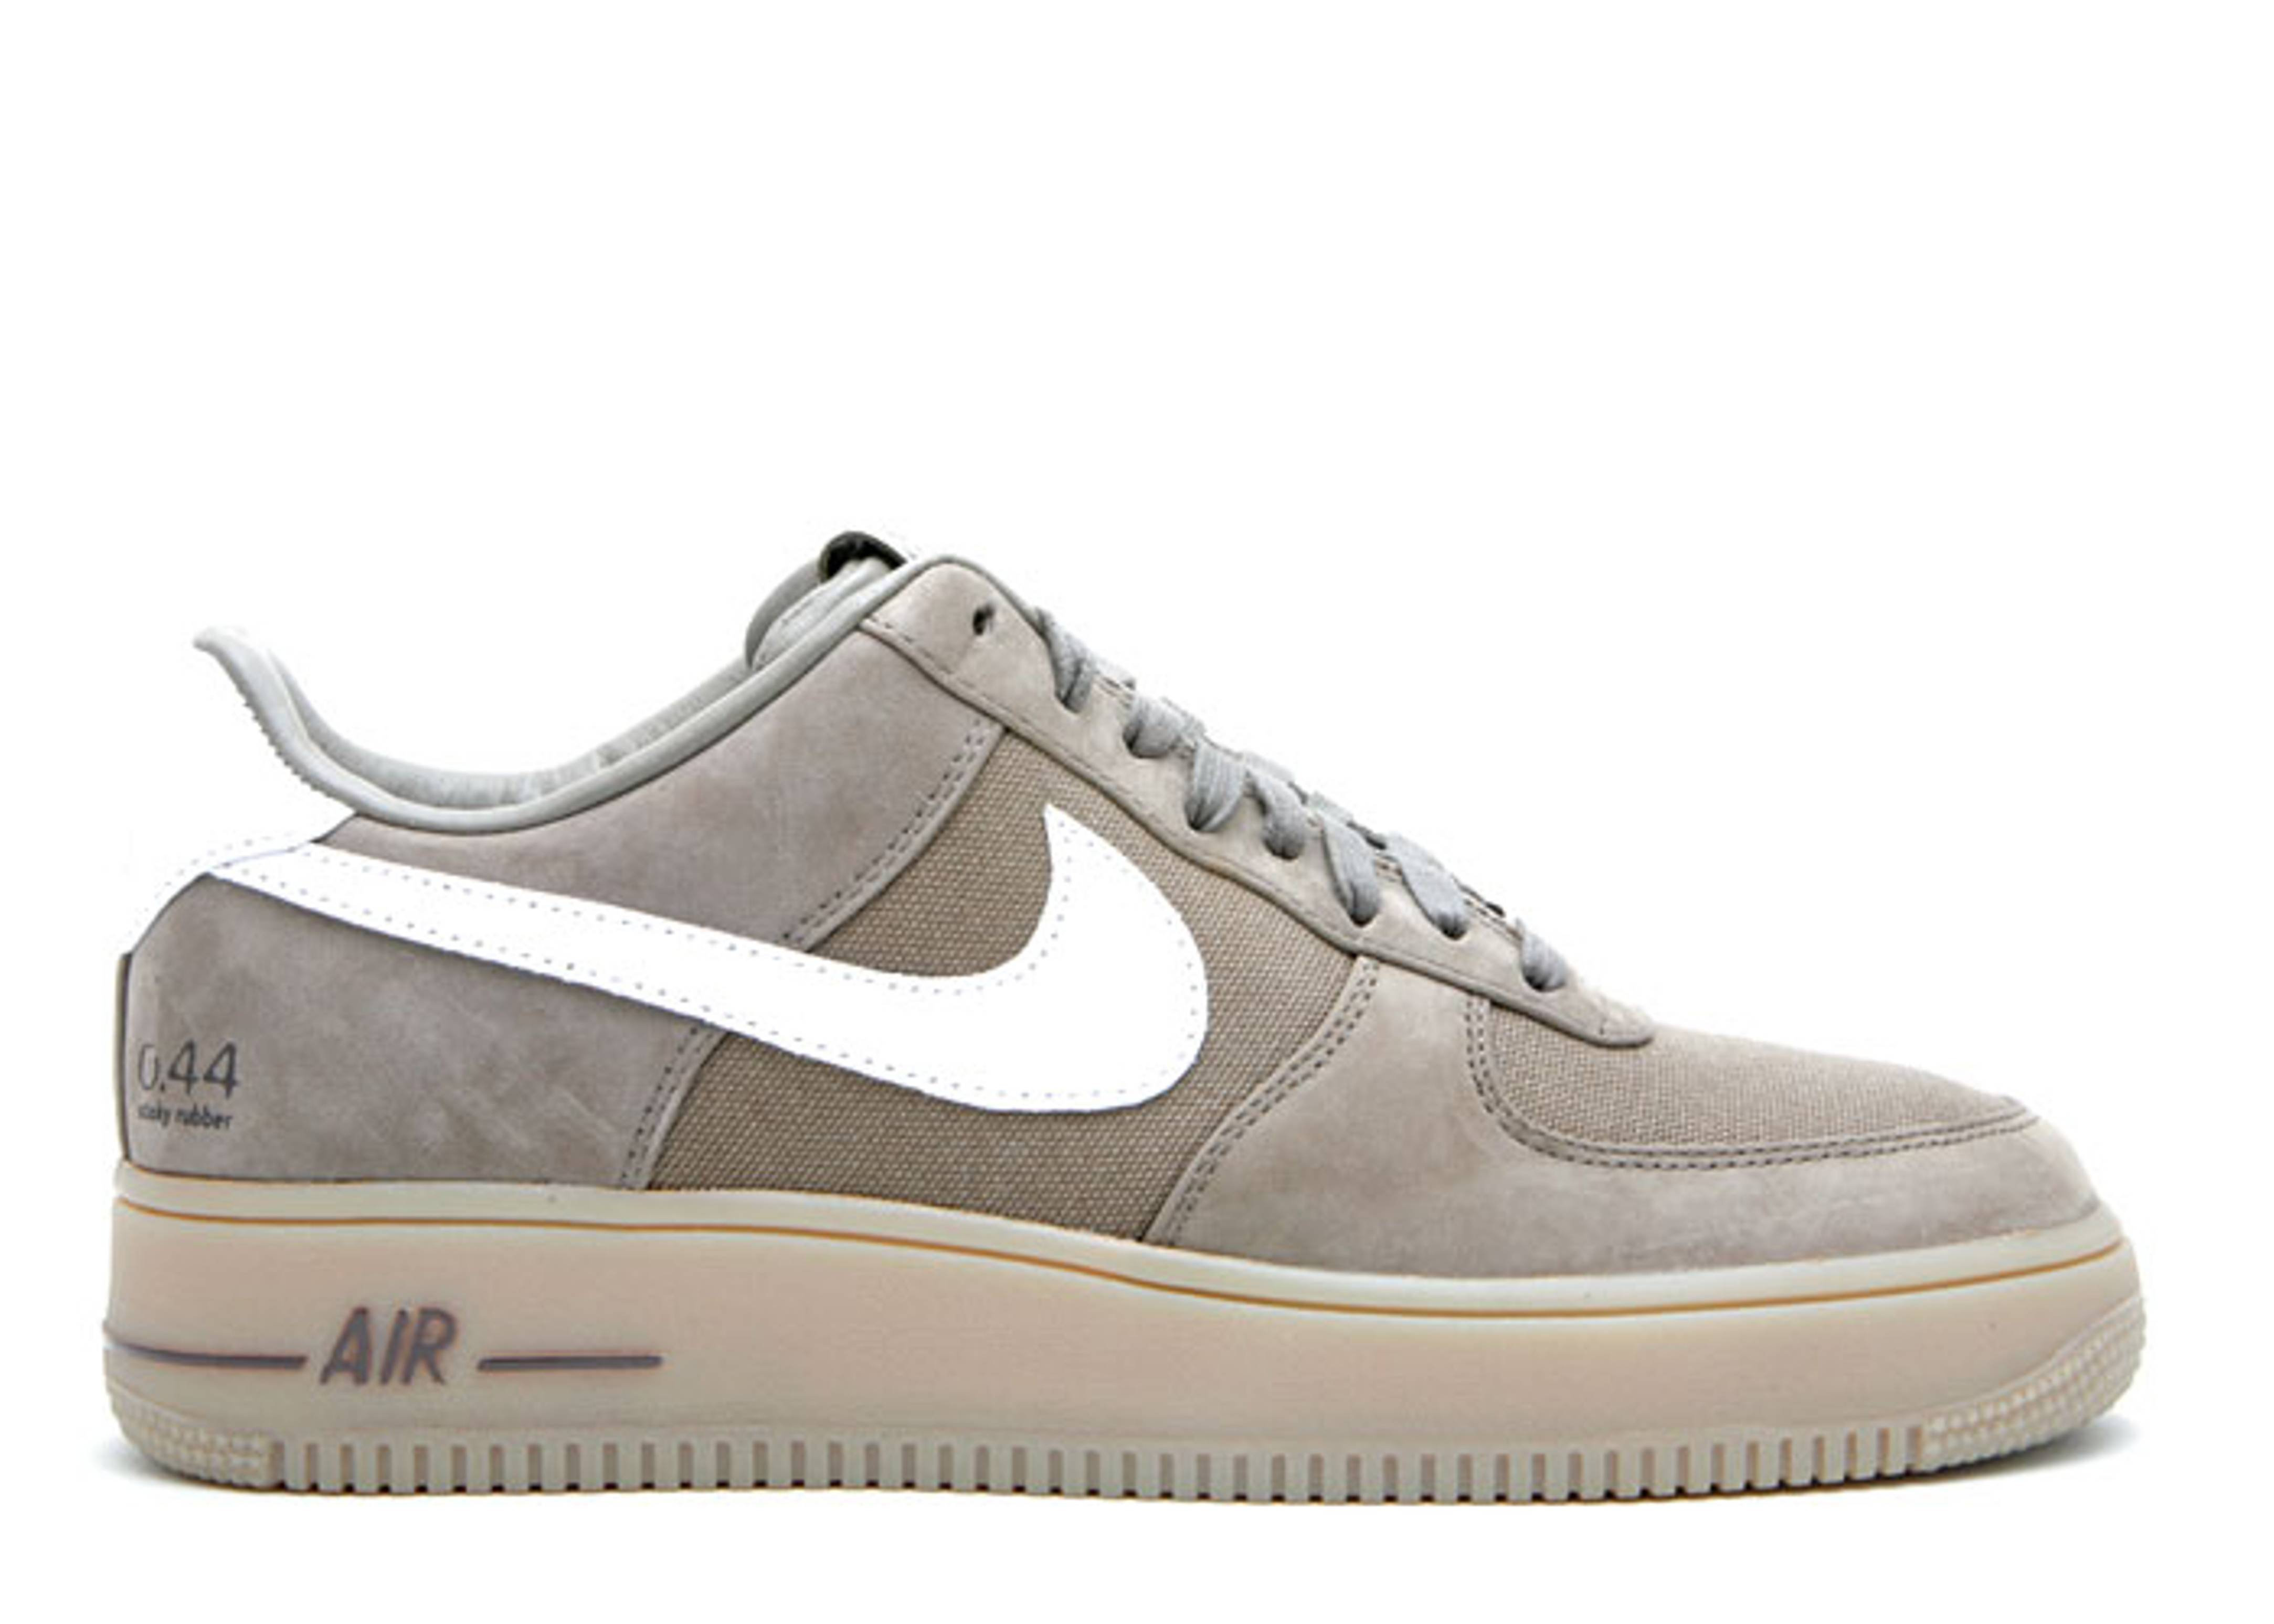 Air Force 1 Low Supreme Wp - Nike - 333884 211 - olive khaki white-gum  light brown  5cce655c7f94